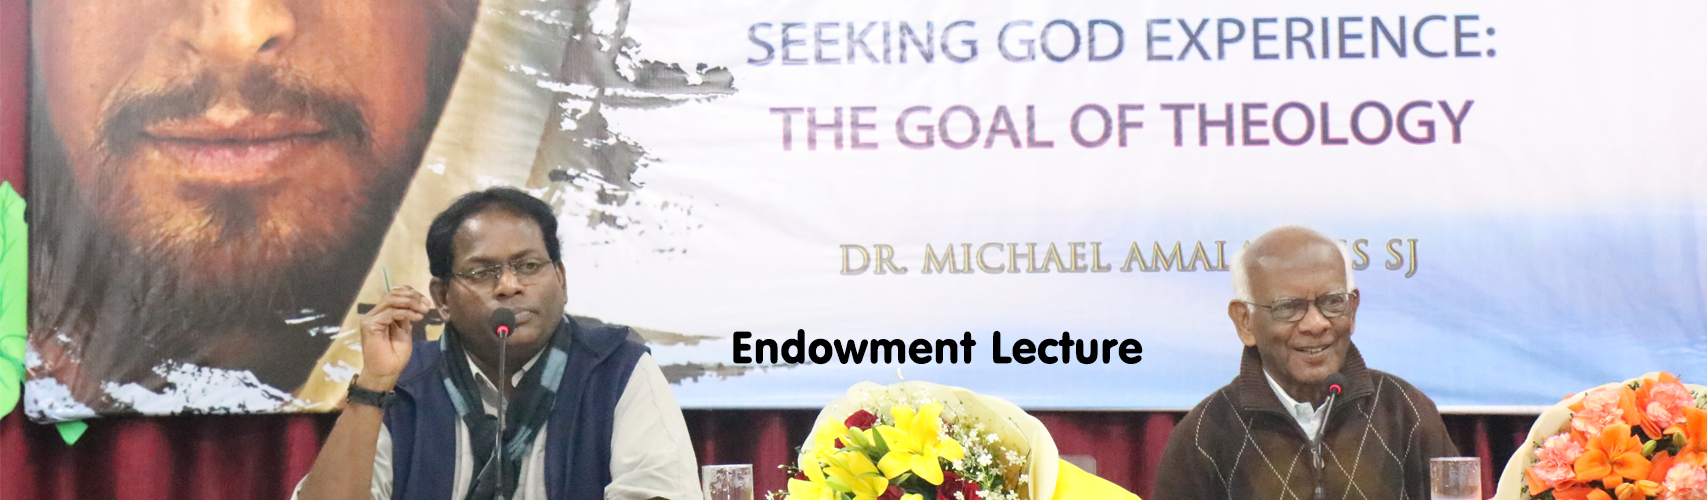 Endowment Lecture